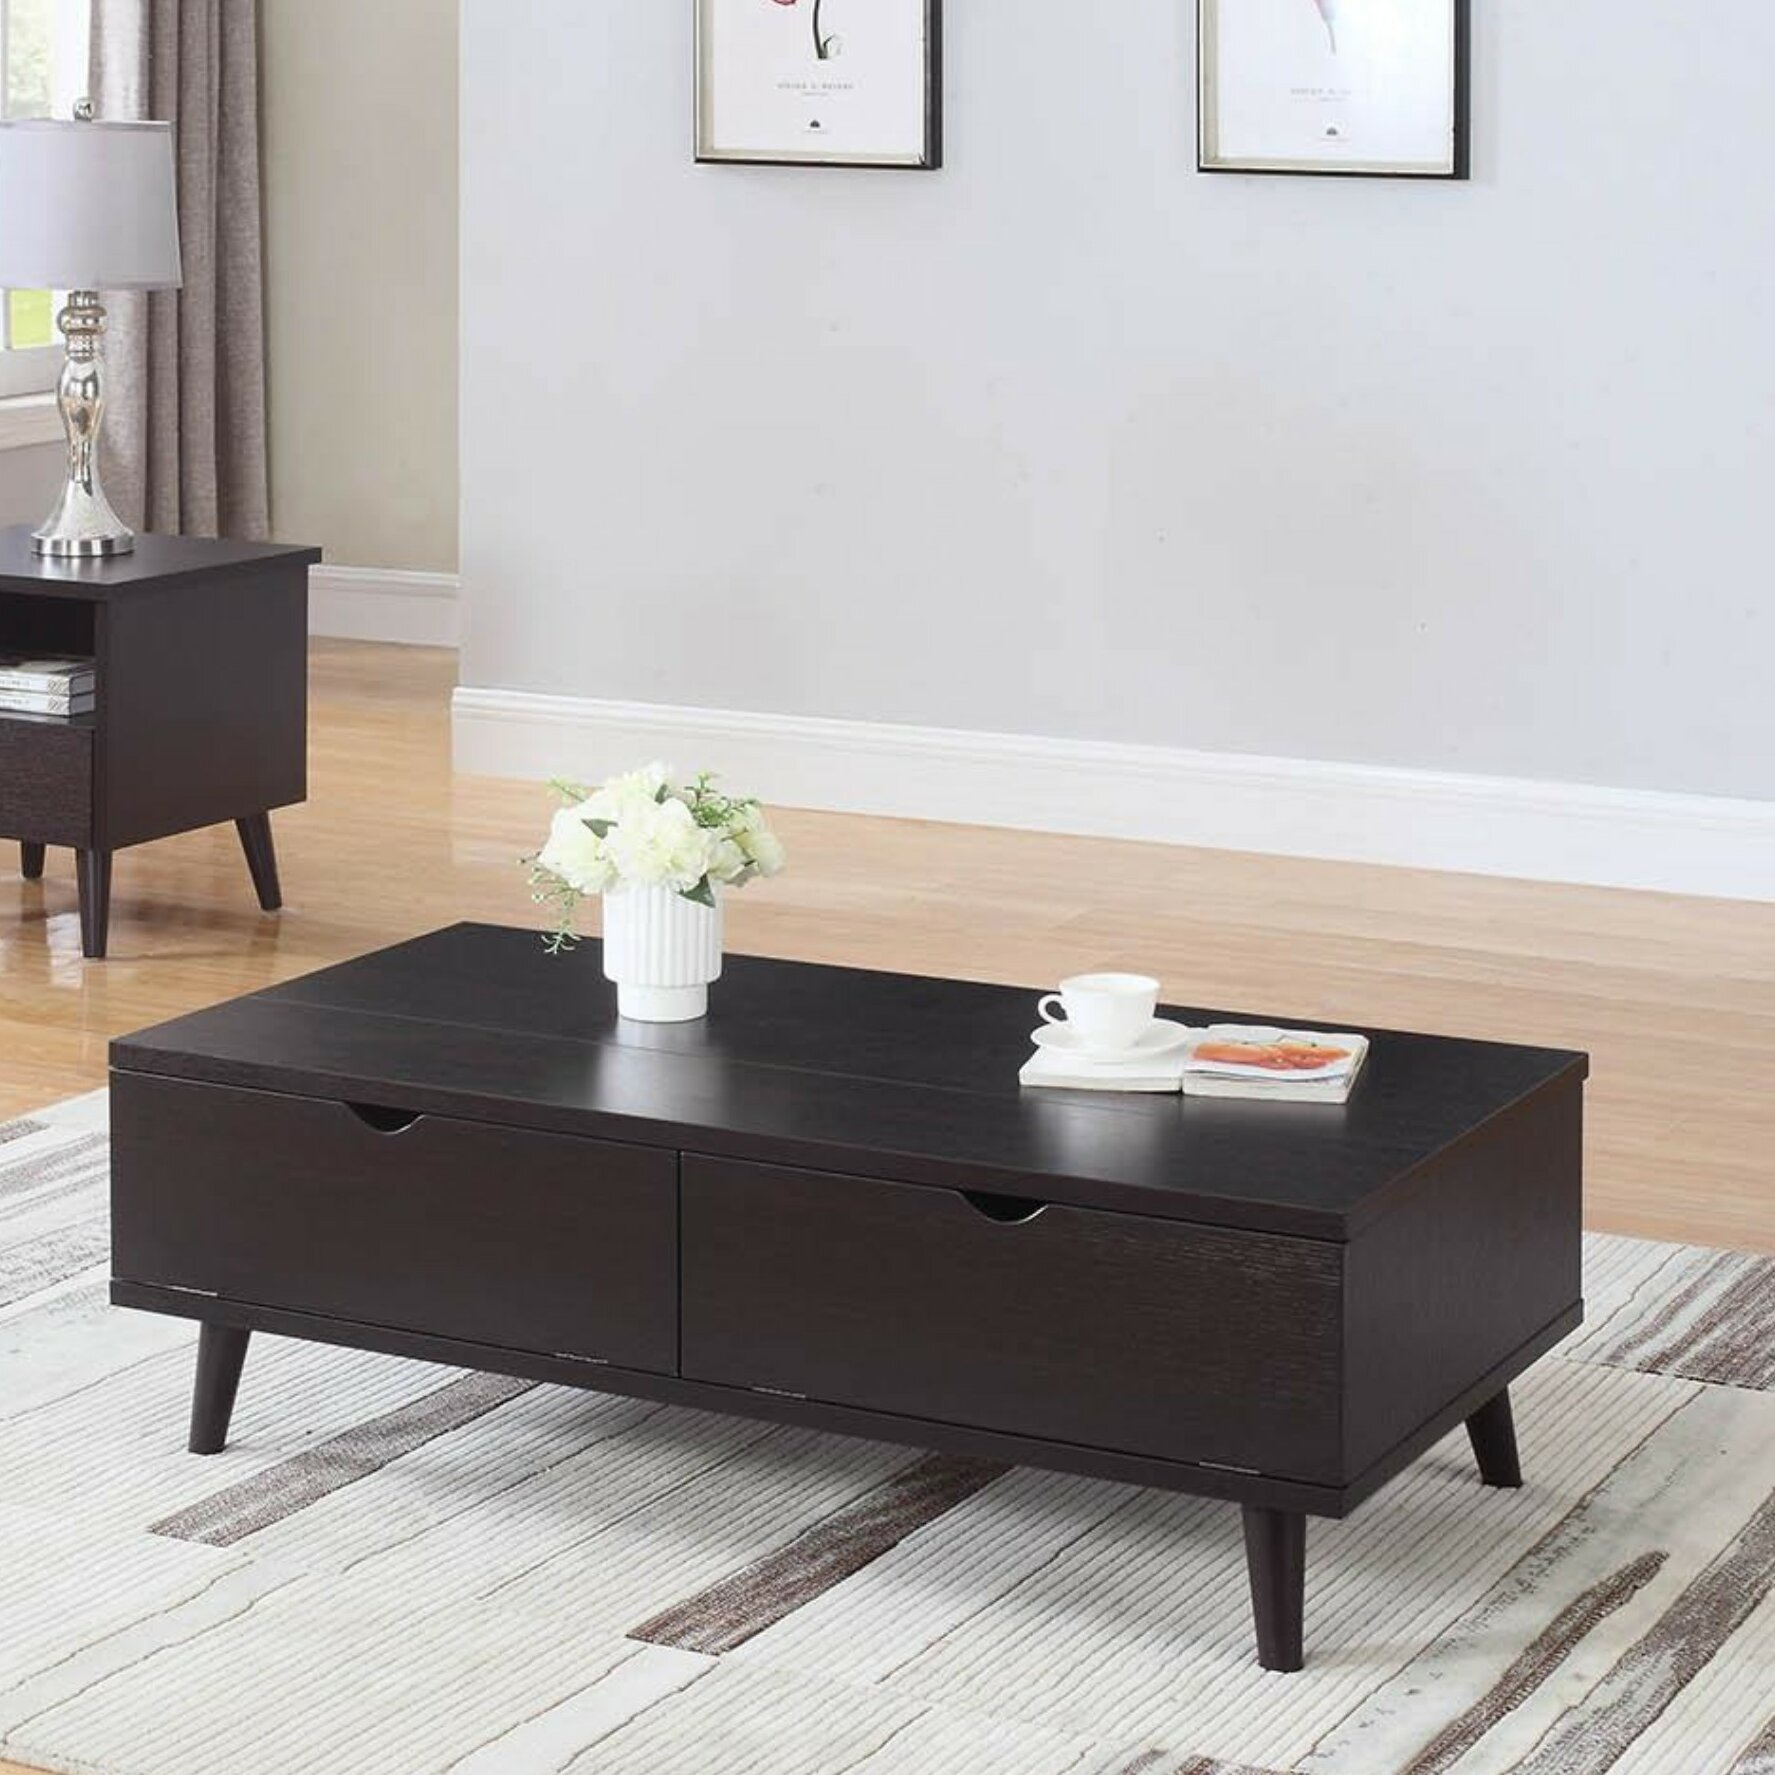 Magnificent Bueno Modern Lift Top Wooden Coffee Table With Storage Bralicious Painted Fabric Chair Ideas Braliciousco